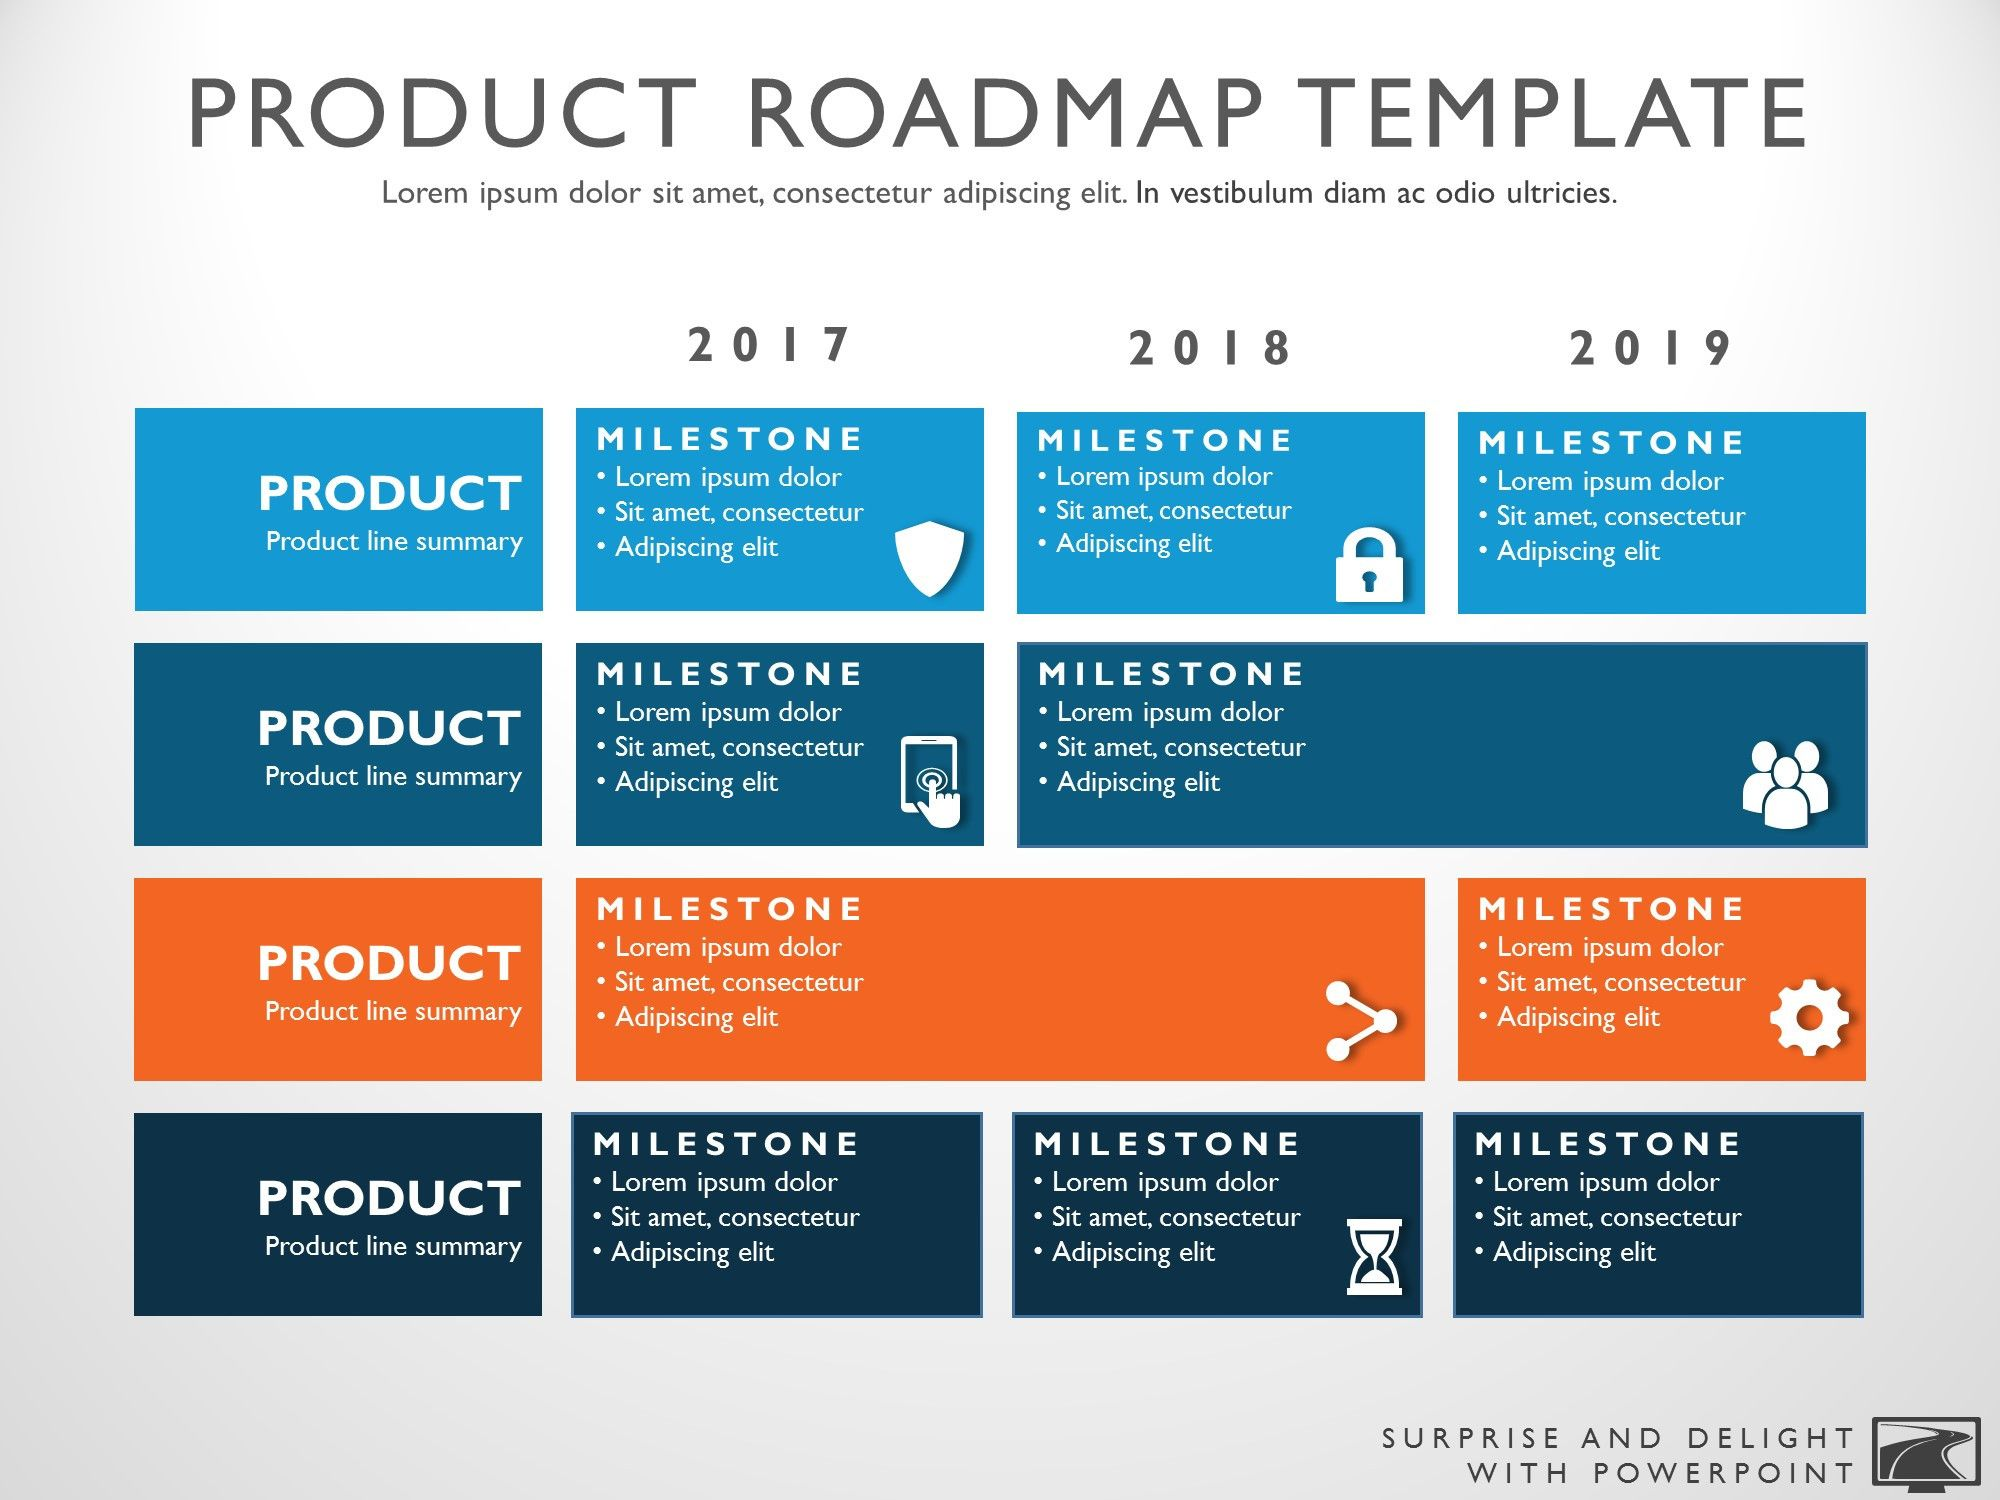 How To Write A 5 Year Business Plan Chron Three Phase Business Planning Timeline Roadmapping